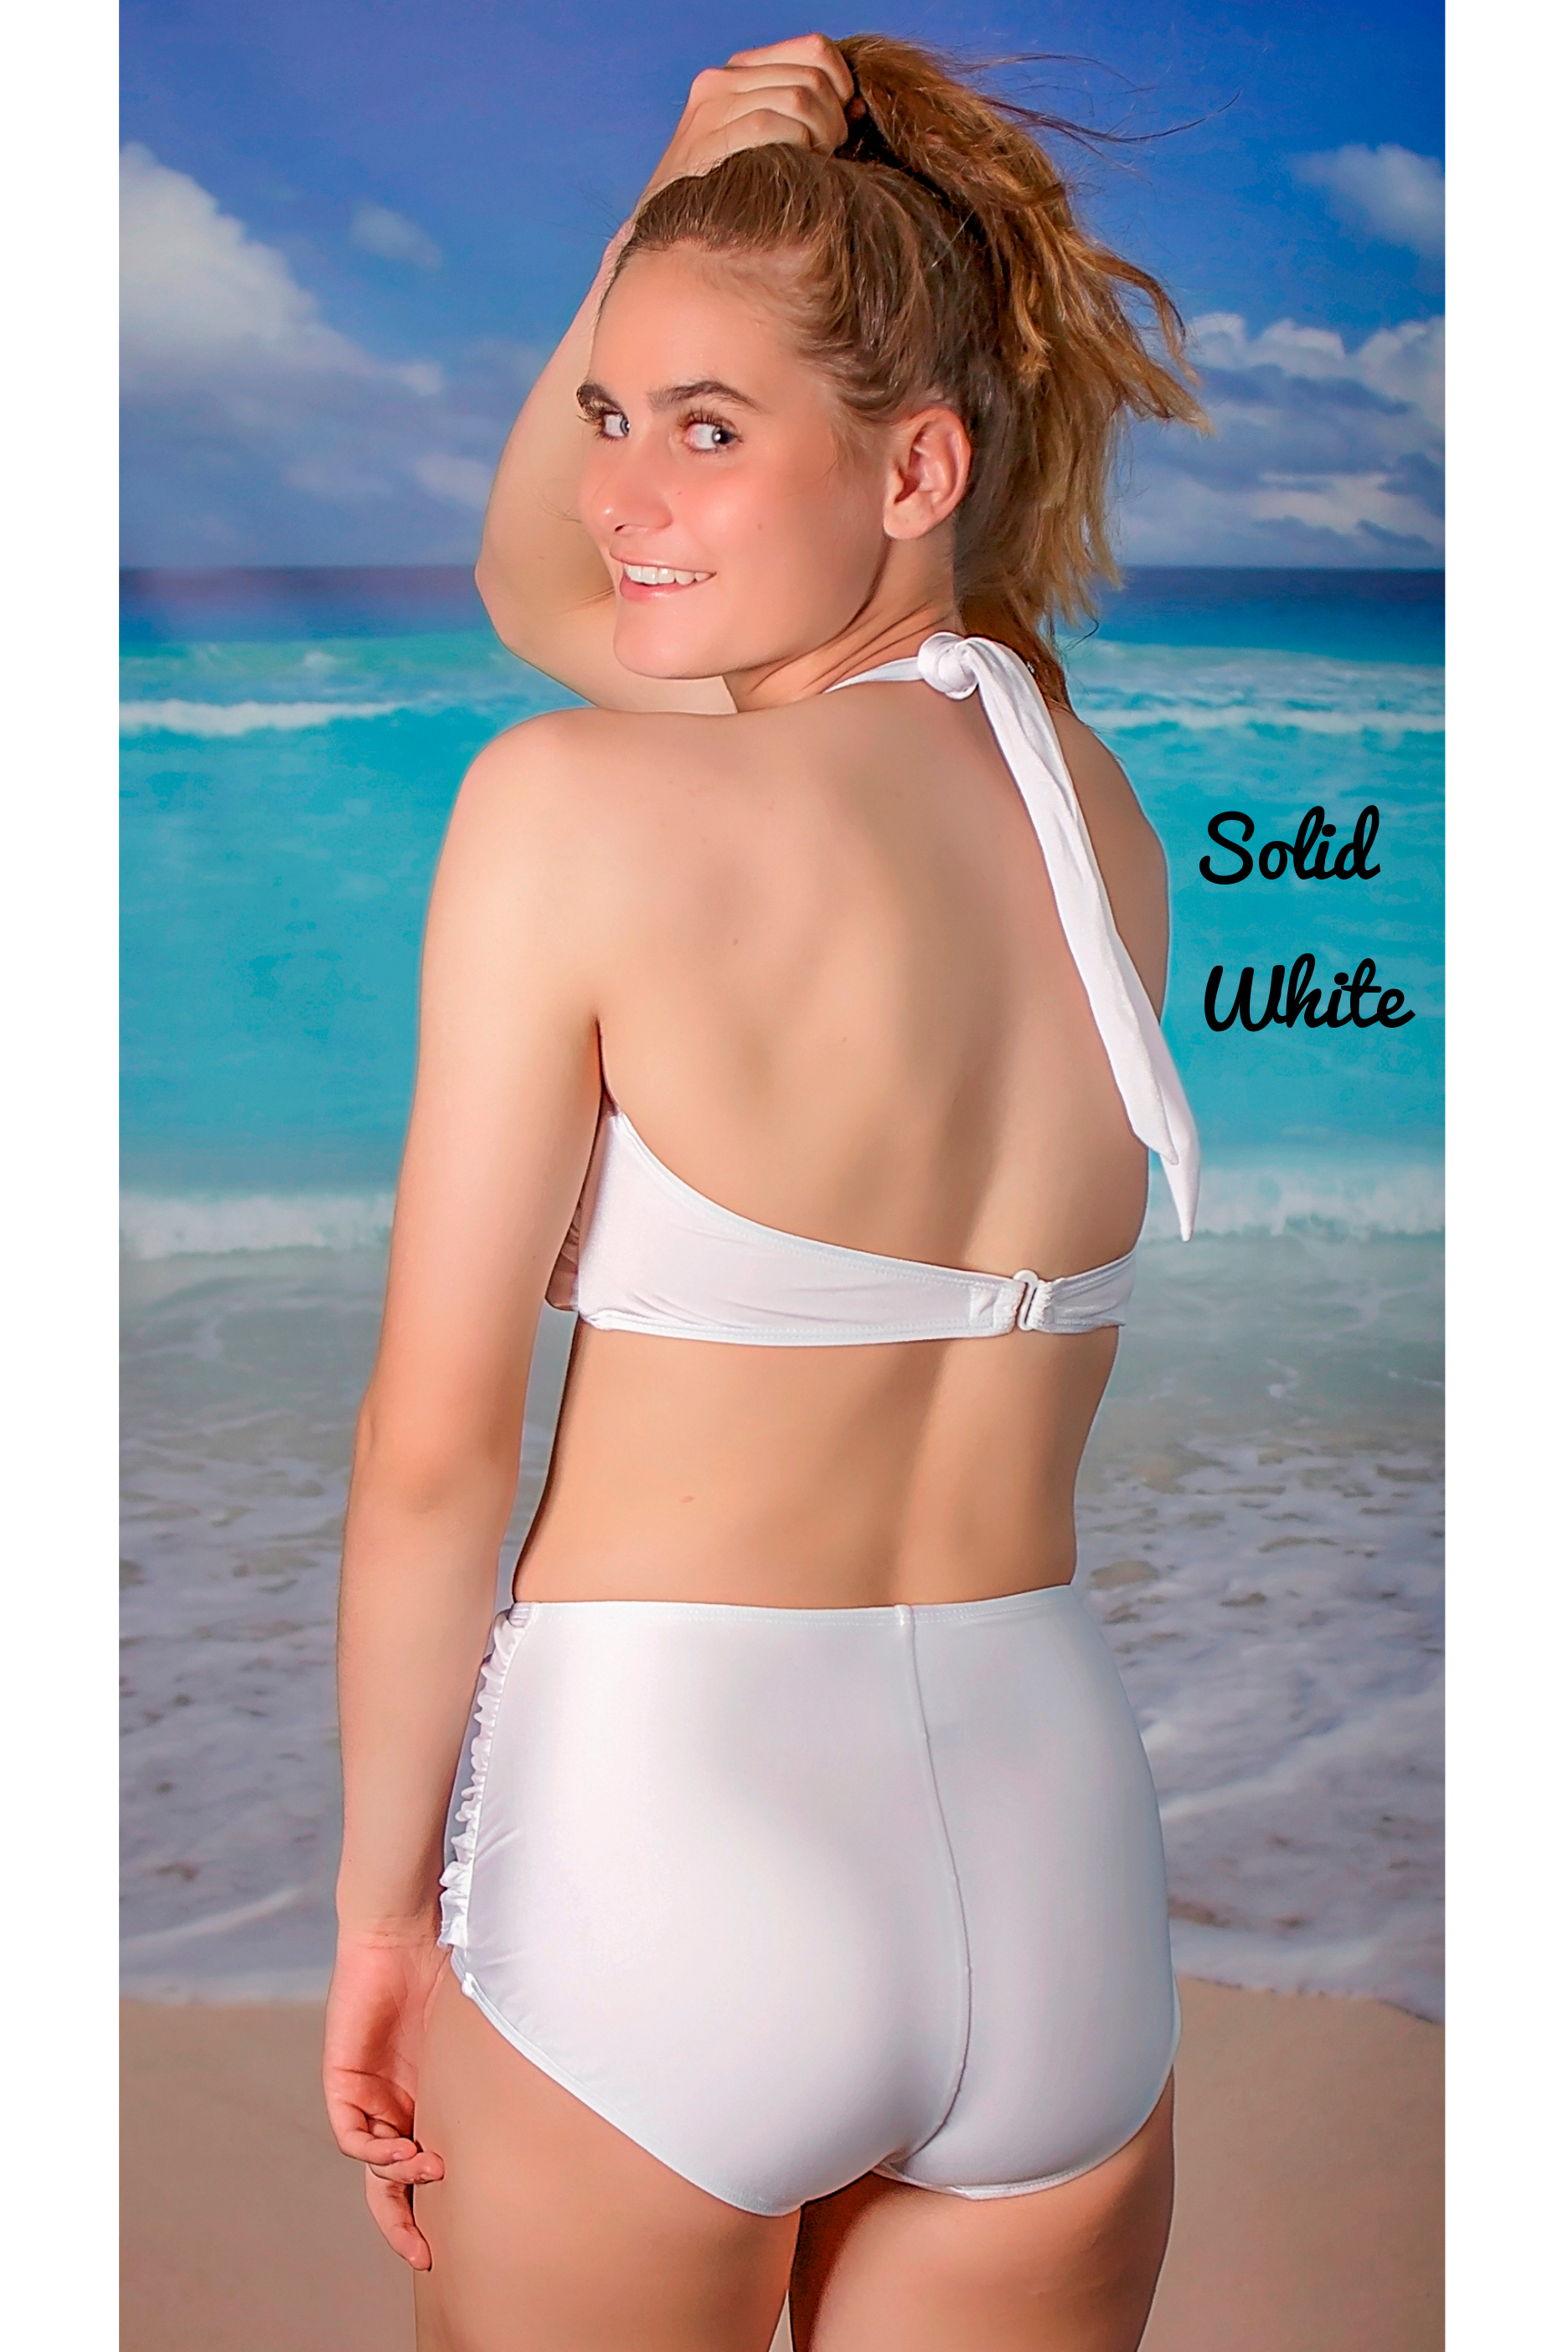 cc41bb8d41c86 Two-Piece Classic Separates | Buy Esther Williams Bathing Suits